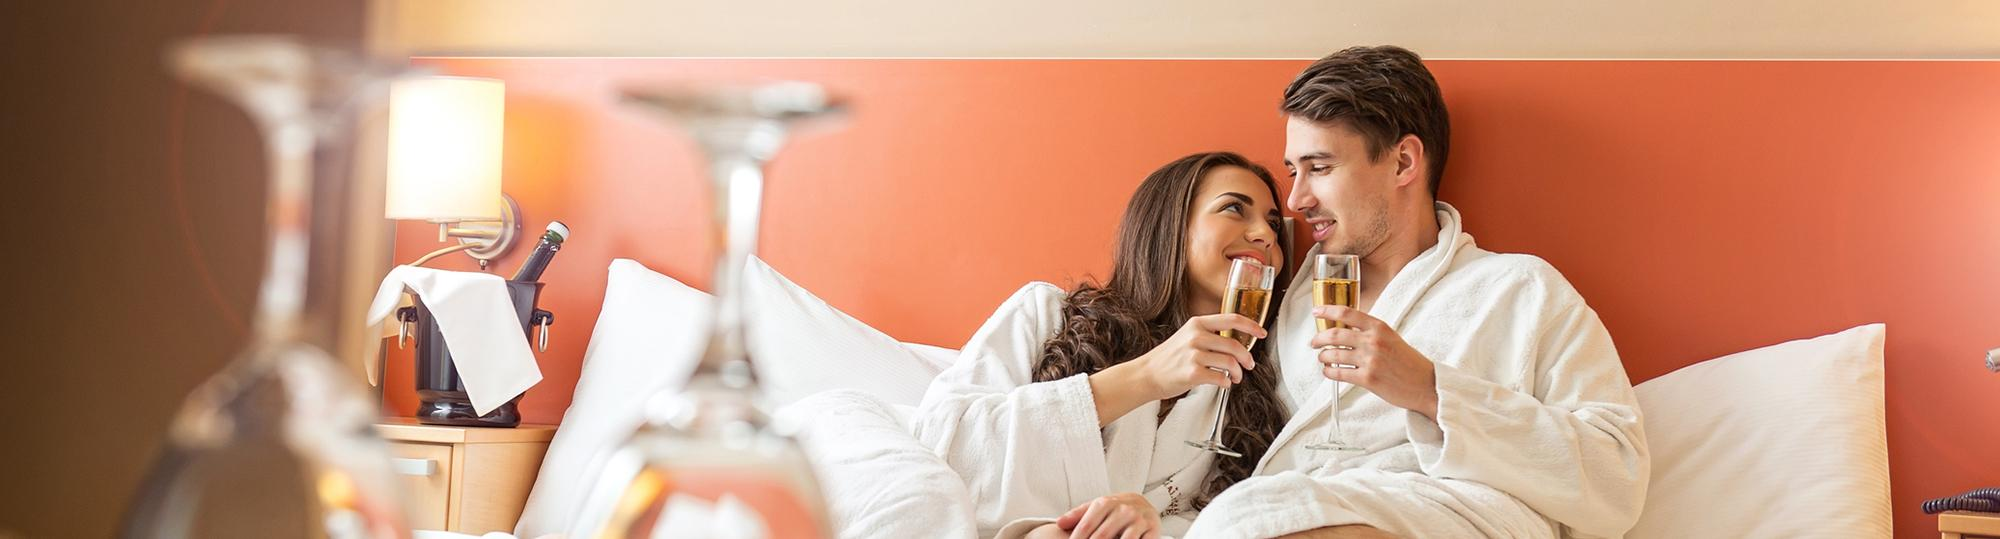 Wyndham hotels and resorts worldwide deal hero romantic couple on hotel bed